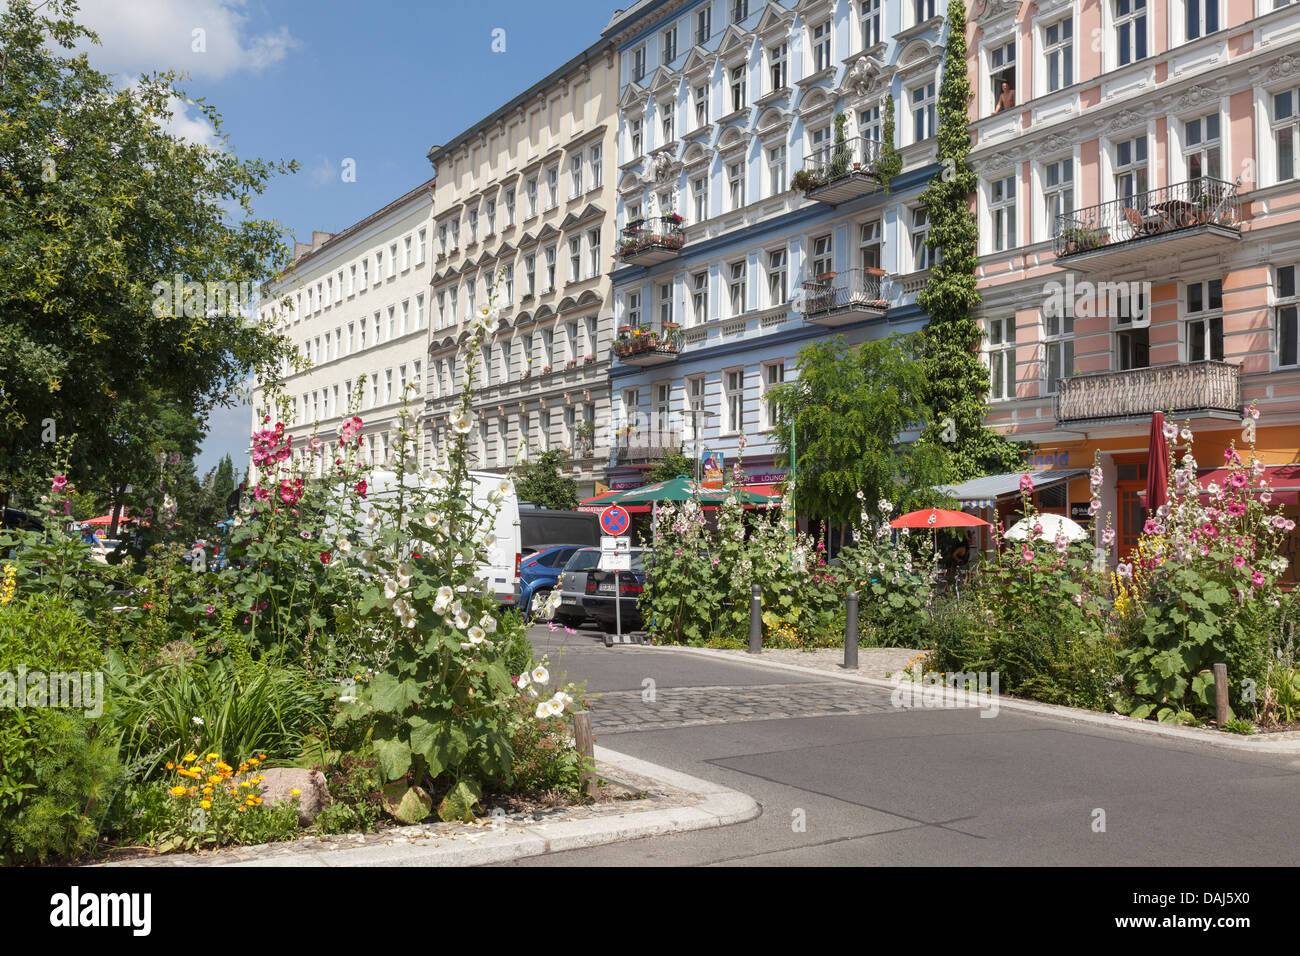 old buildings and flowers on oderberger strasse prenzlauer berg stock photo royalty free image. Black Bedroom Furniture Sets. Home Design Ideas